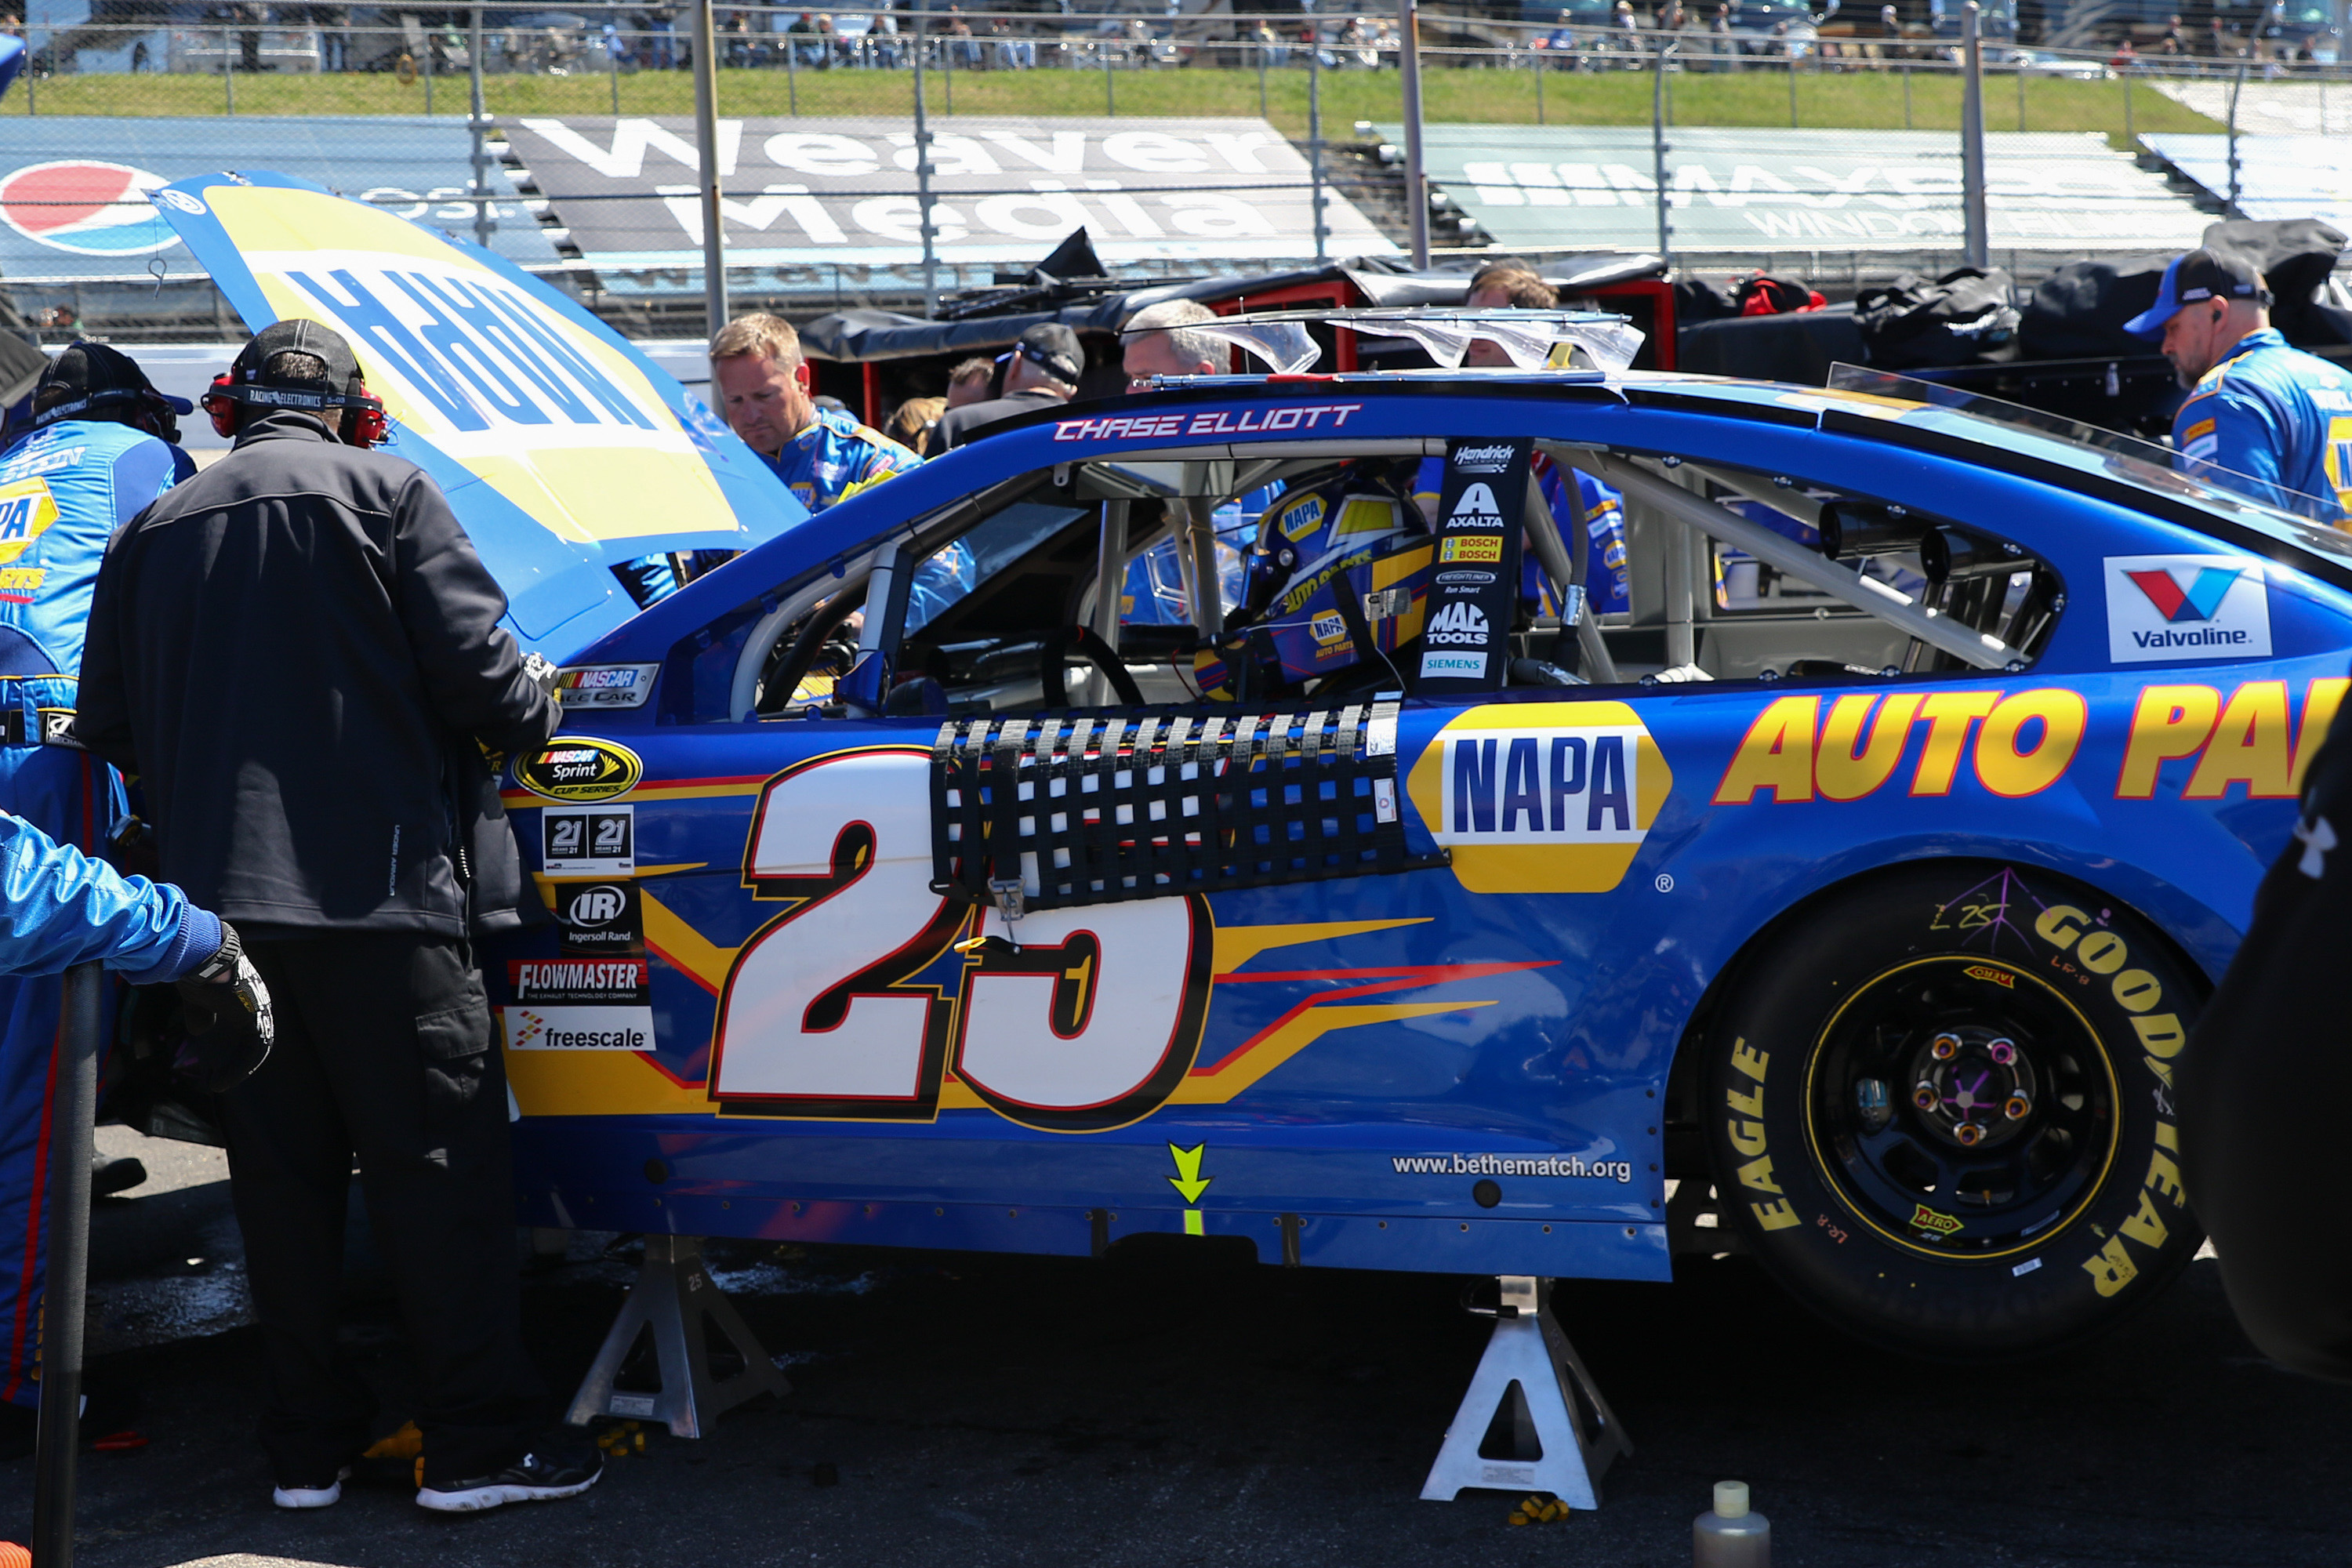 Mar 29, 2015; Martinsville, VA, USA; Sprint Cup Series driver Chase Elliott (25) waits as his car is repaired during the STP 500 at Martinsville Speedway. (Randy Sartin-USA TODAY Sports)